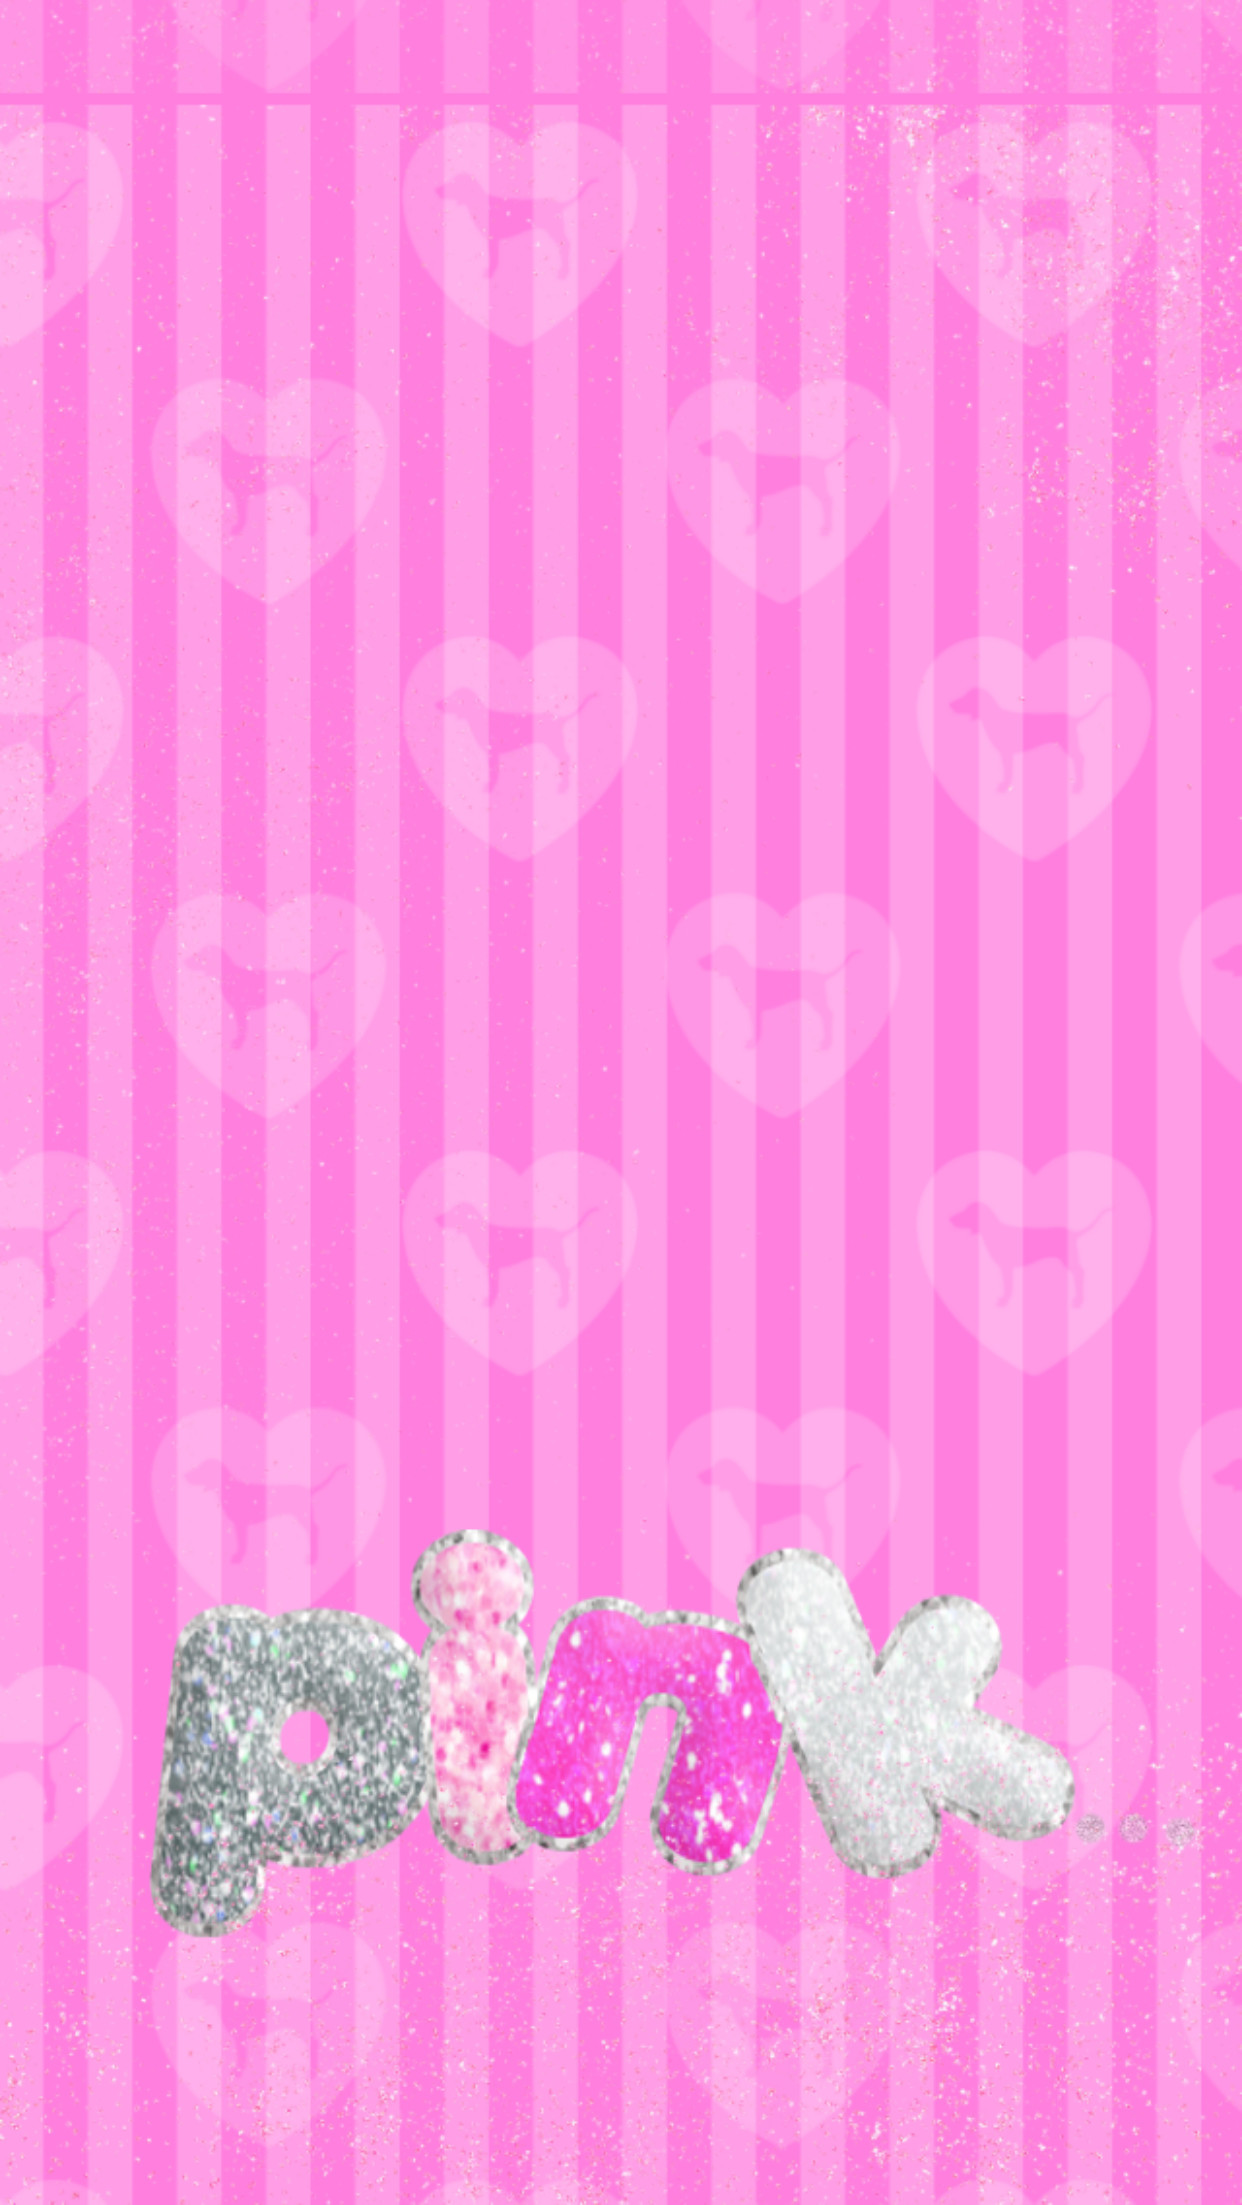 Cute Wallpapers, Phone Wallpapers, Iphone 3, Fashion Brands, Vs Pink, Wall  Papers, Hello Kitty, Android, Girly